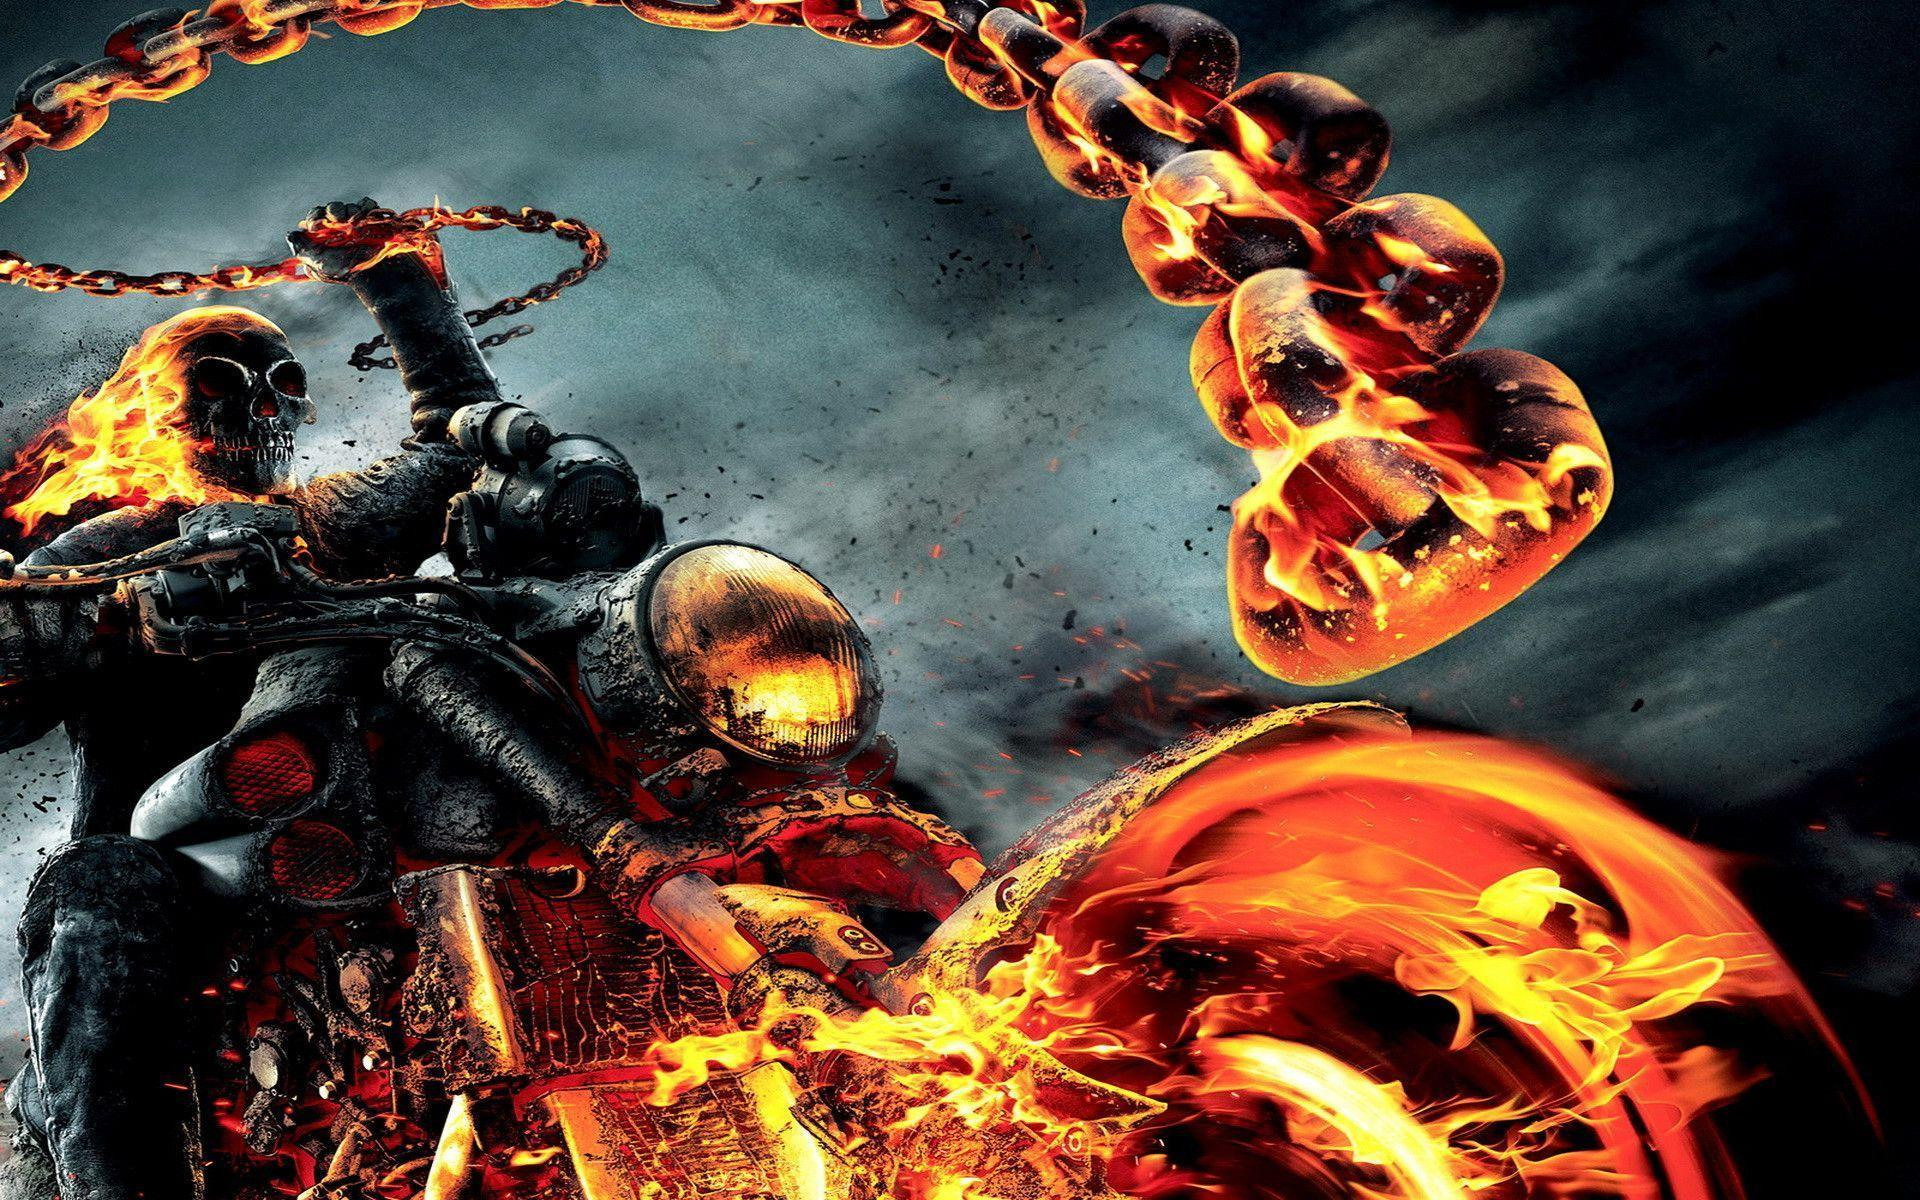 ghost rider wallpaper bike - photo #15